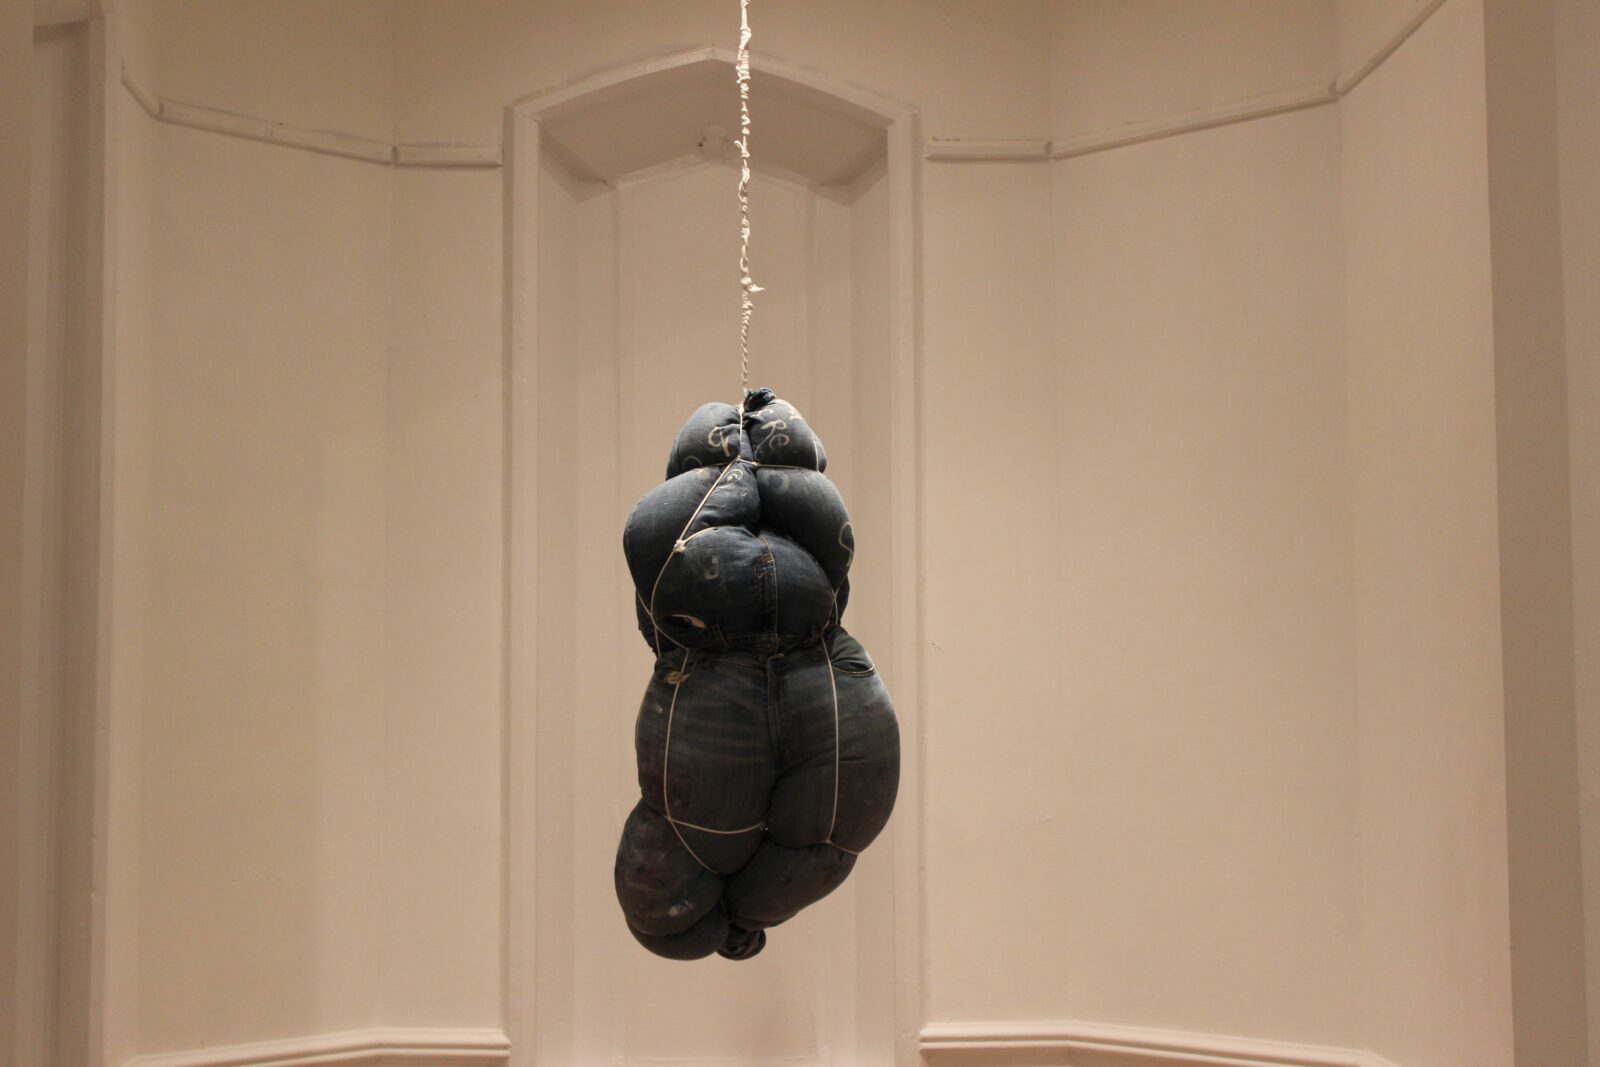 Shinique Smith-Soul Elsewhere-Artist's Clothing, Fiber-fill, and Rope(2)